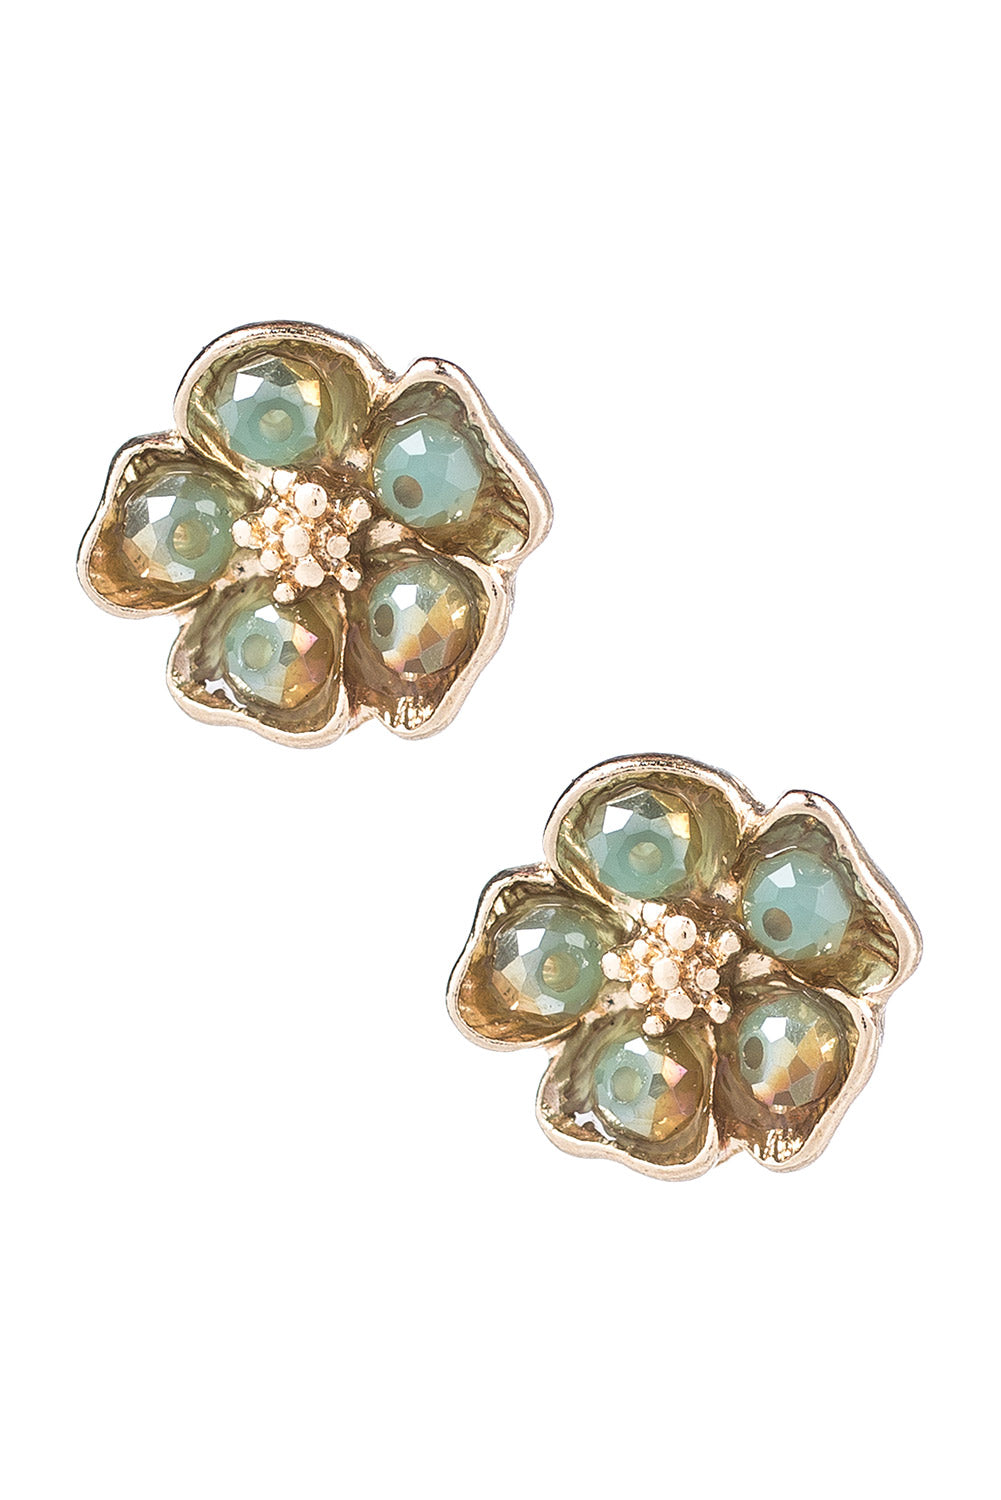 Type 1 Mint Peonies Earrings